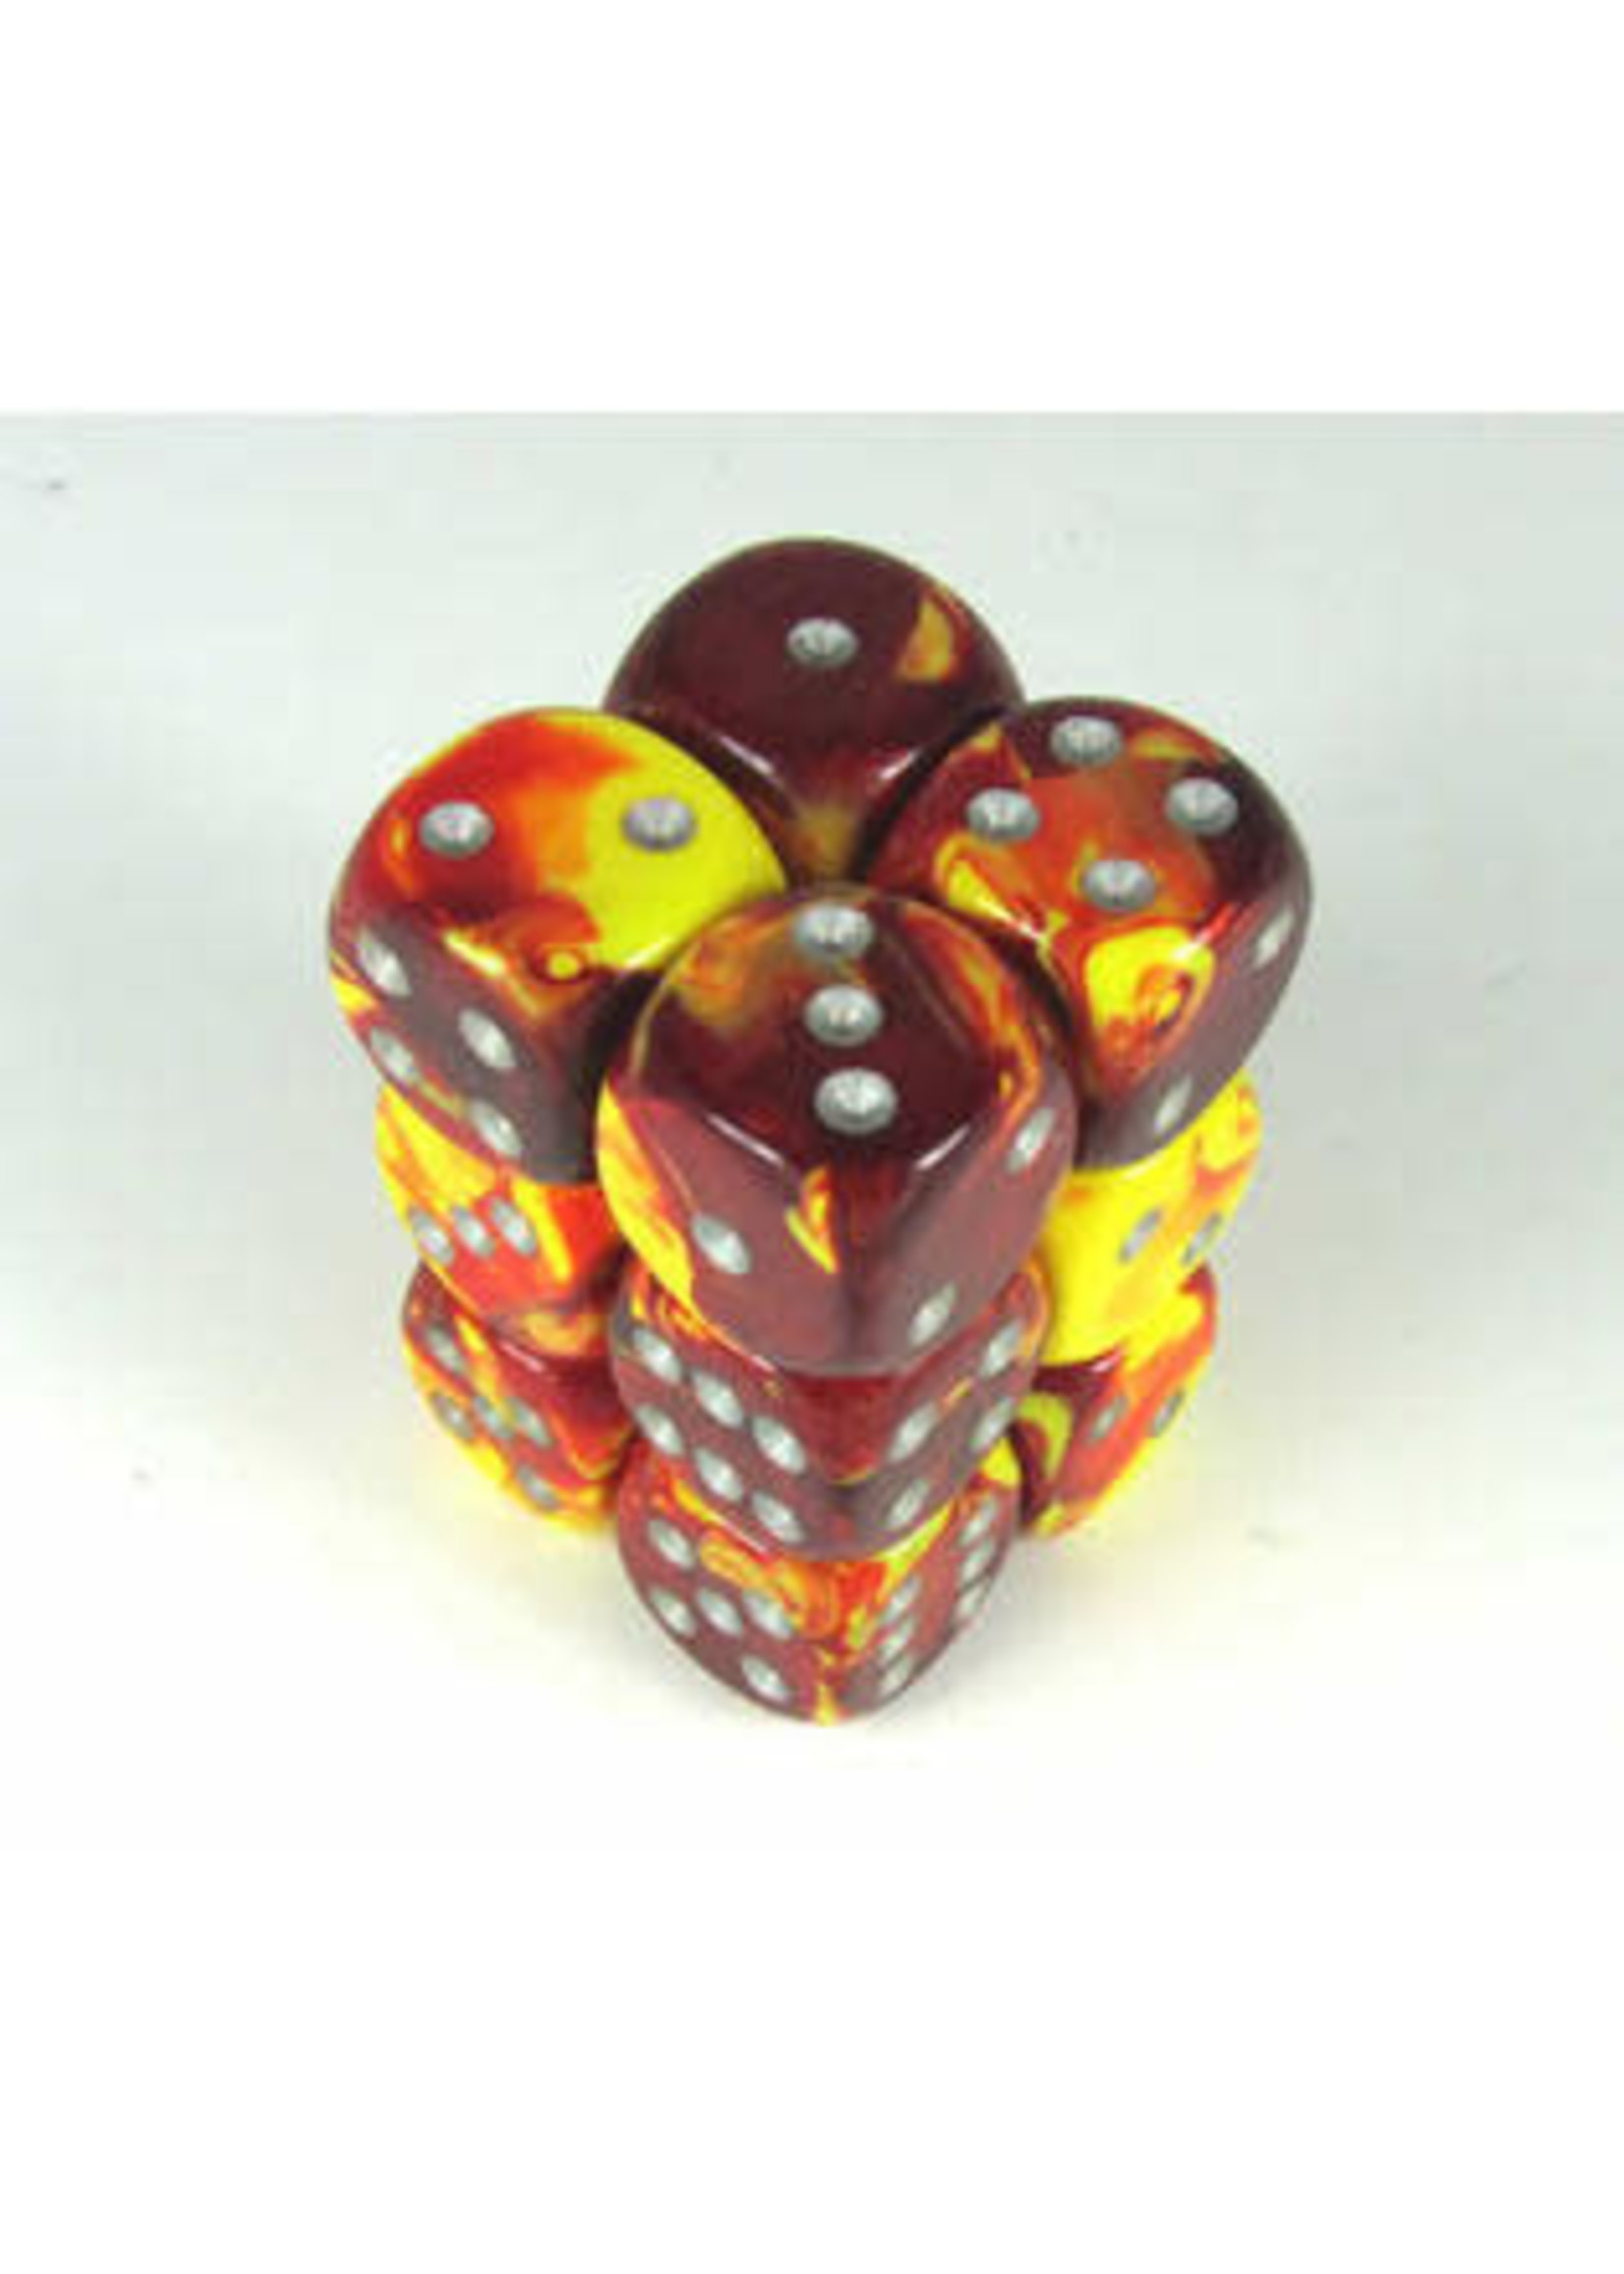 Chessex d6 Cube 16mm Gemini Red & Yellow w/ Silver (12)